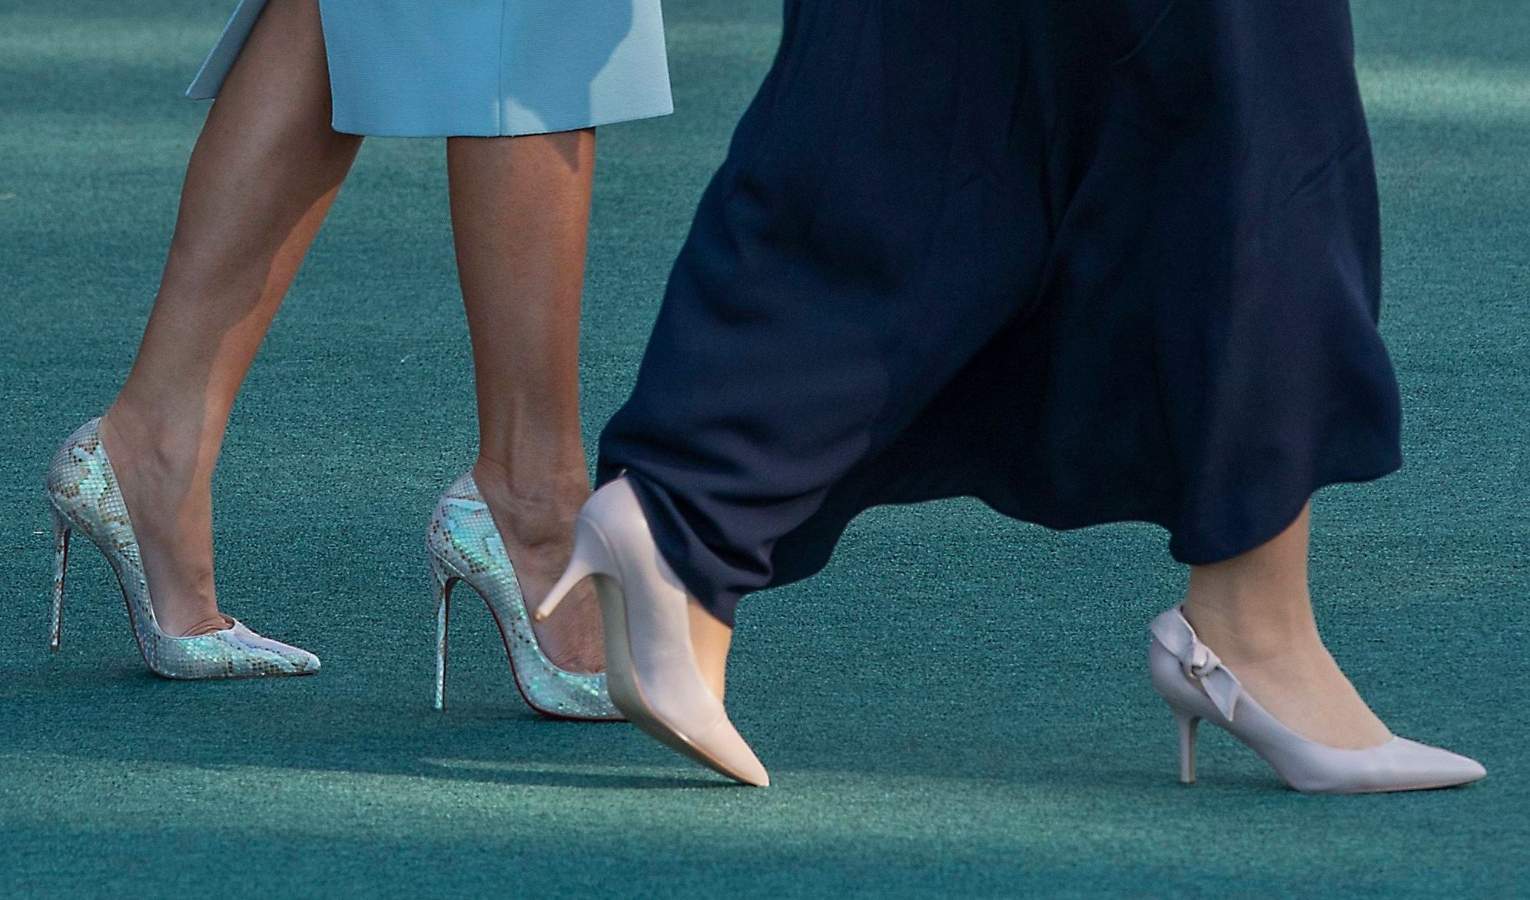 white house, president, first lady, donald trump, melania trump, Prime Minister of Australia, heels